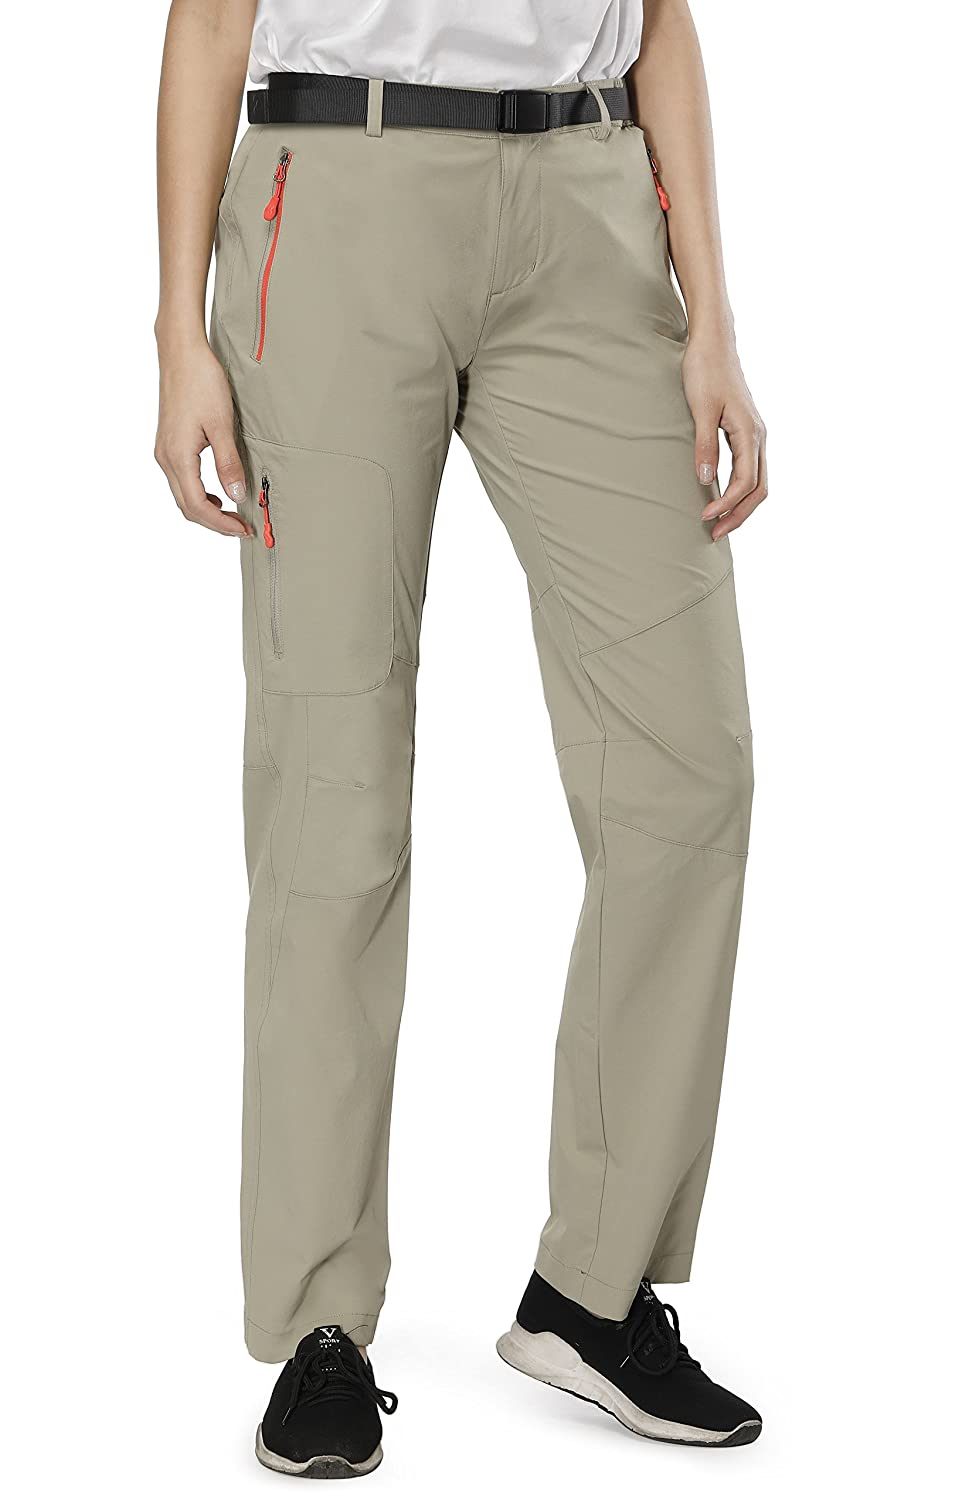 8b20450e25205 Lightweight Hiking Pants---- Only about 12 ounces, MIER women pants made of  light but durable nylon fabric with 4-way stretch for easy movement.